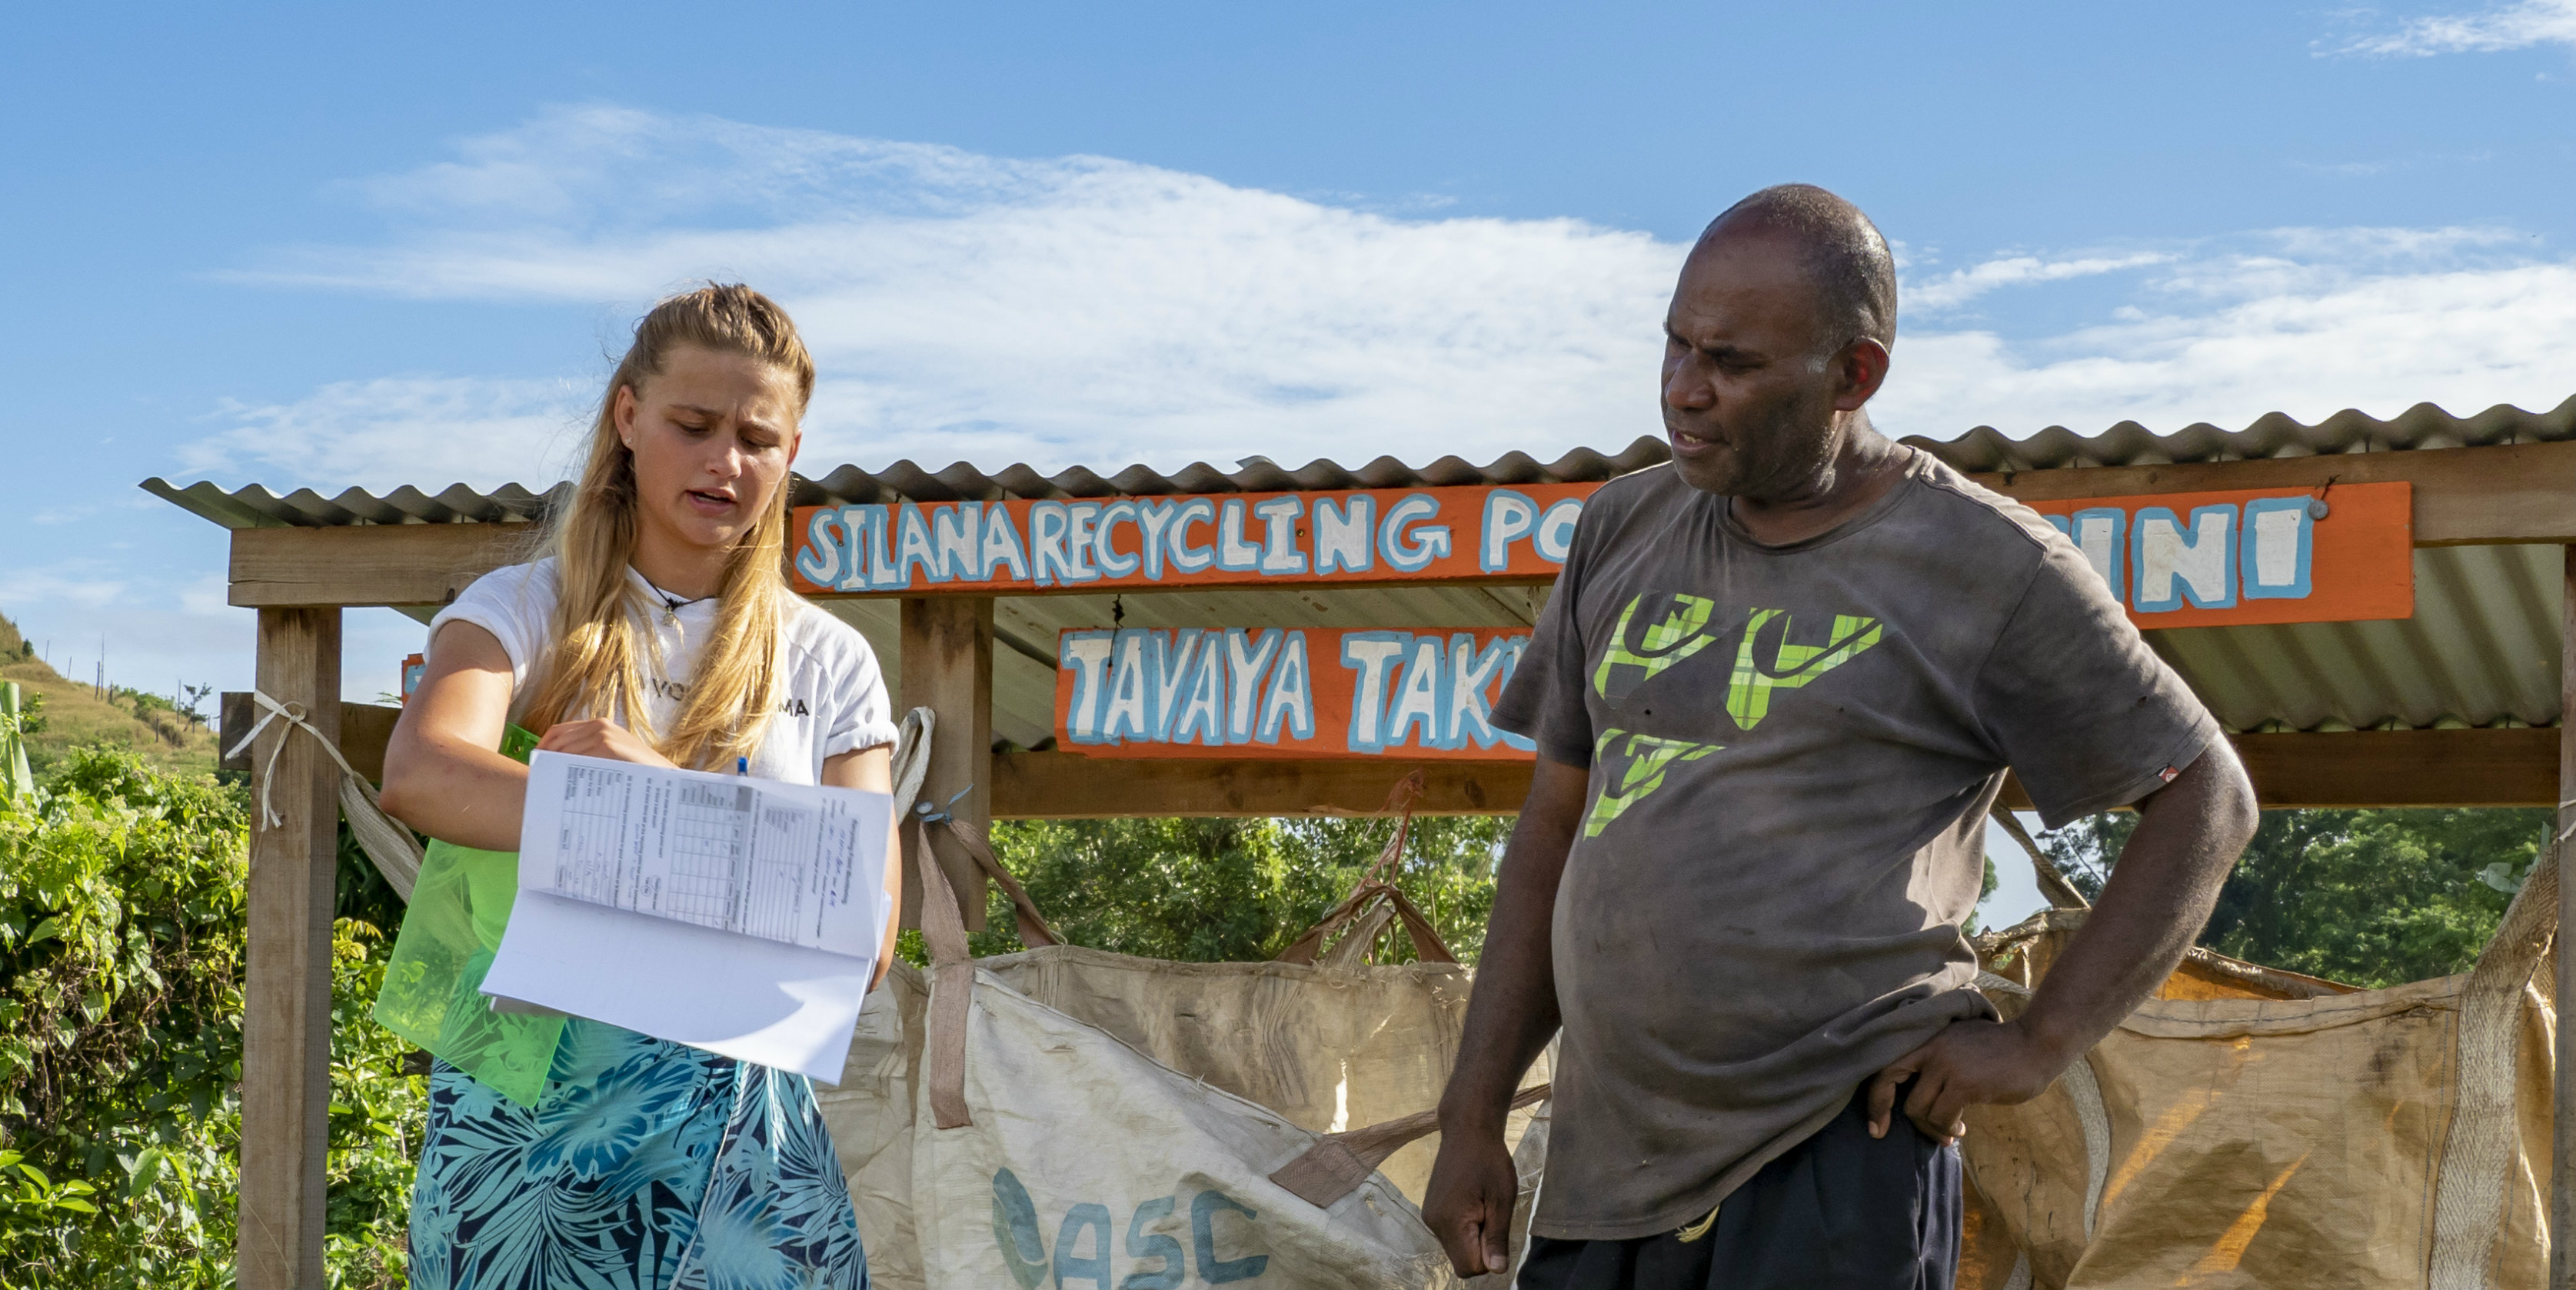 A GVI participant helps to manage a recycling program in Fiji. Reducing, and recycling plastic waste is an important step in trying to save the oceans.